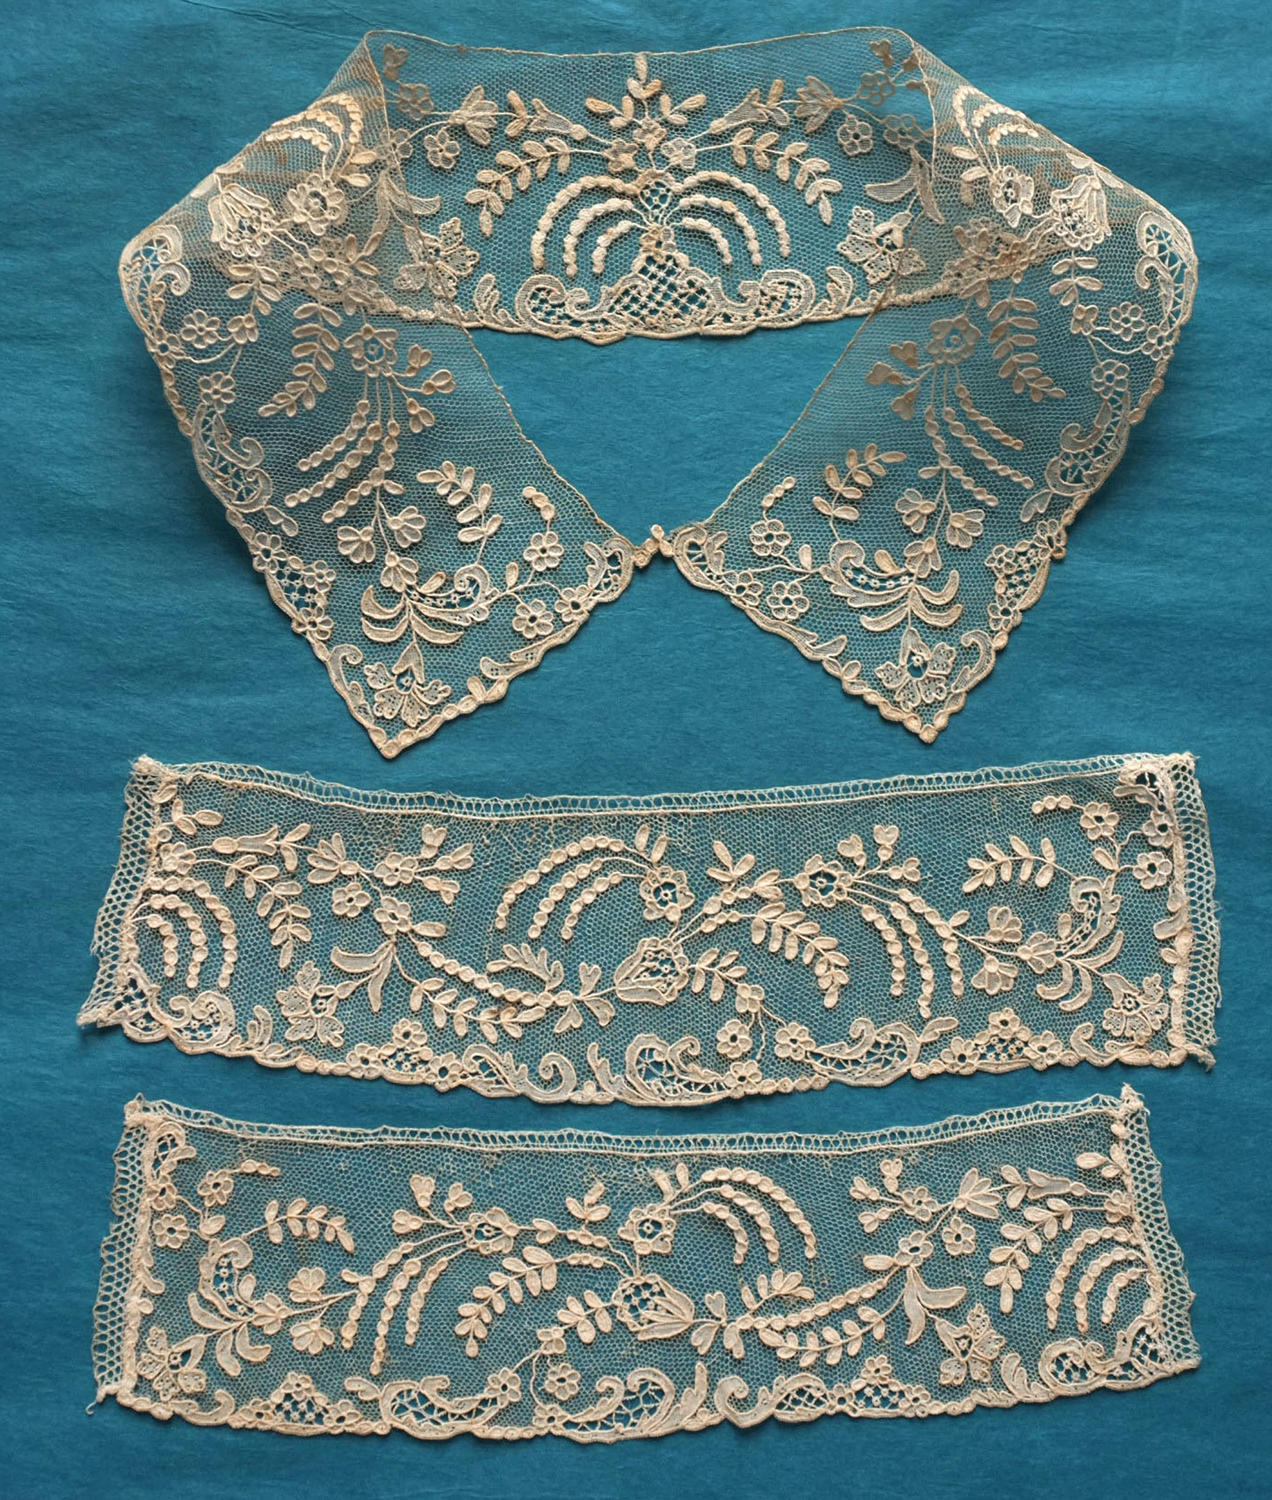 19th Century Alencon Collar and Cuffs